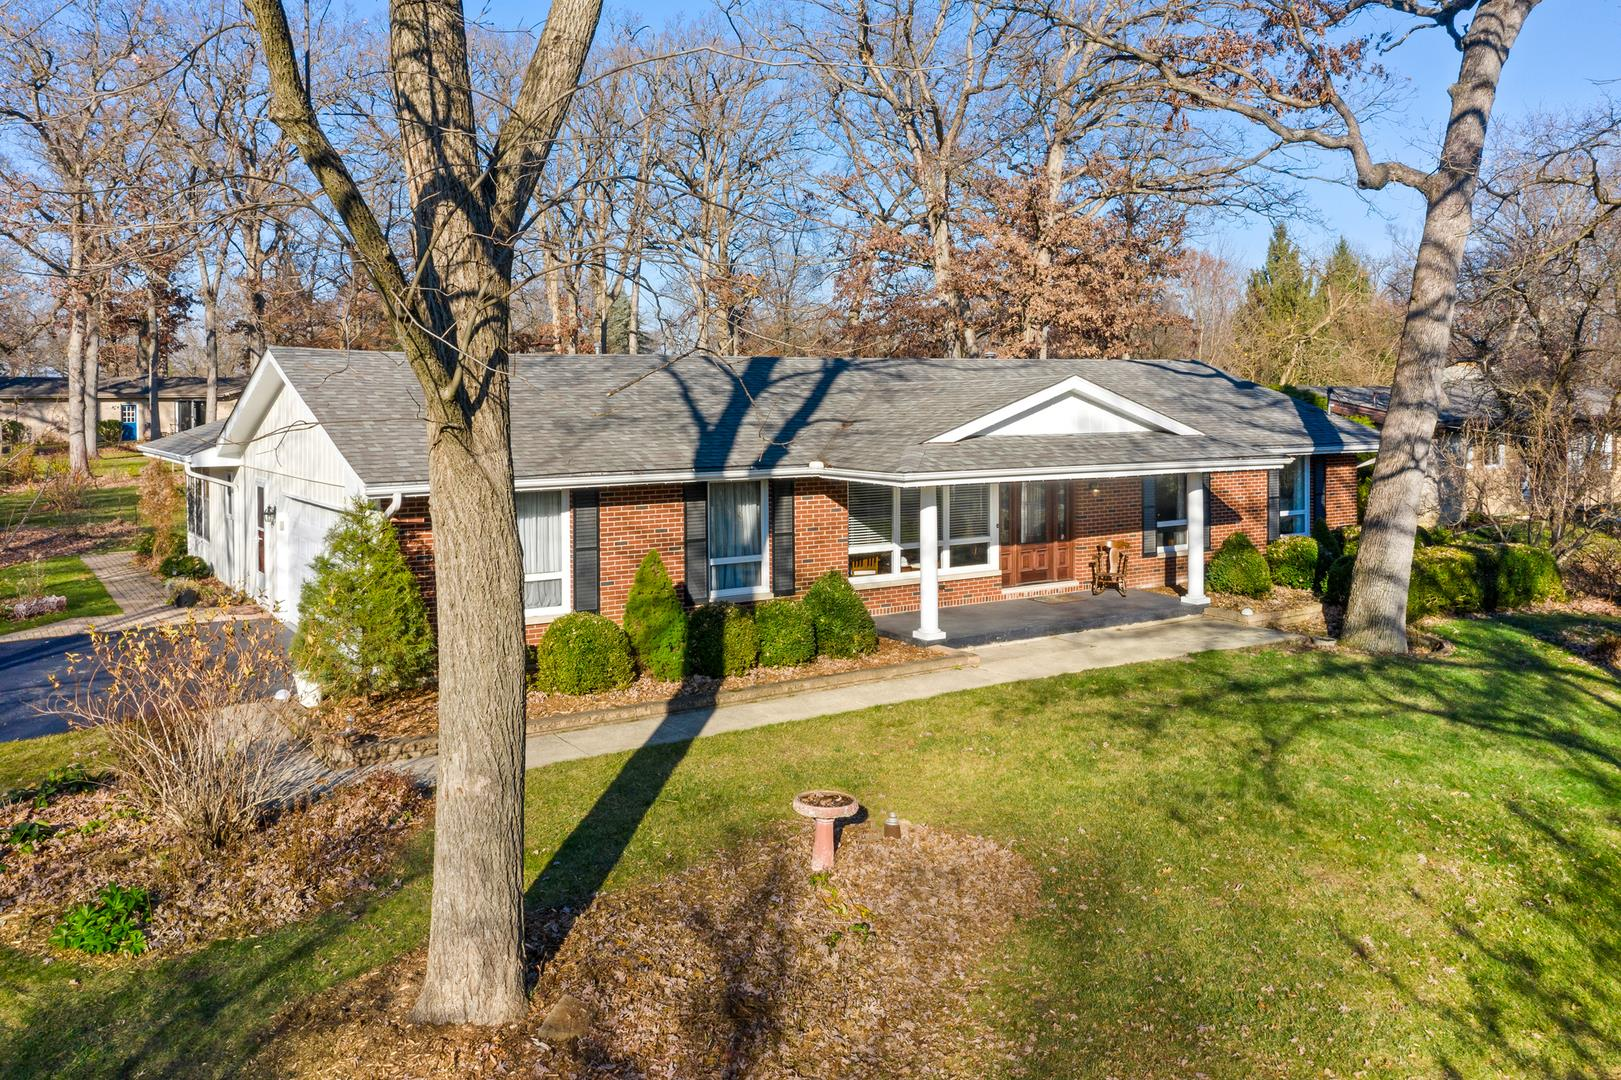 2S715 Oakwood Terrace, Elburn, IL 60119 - #: 10936771